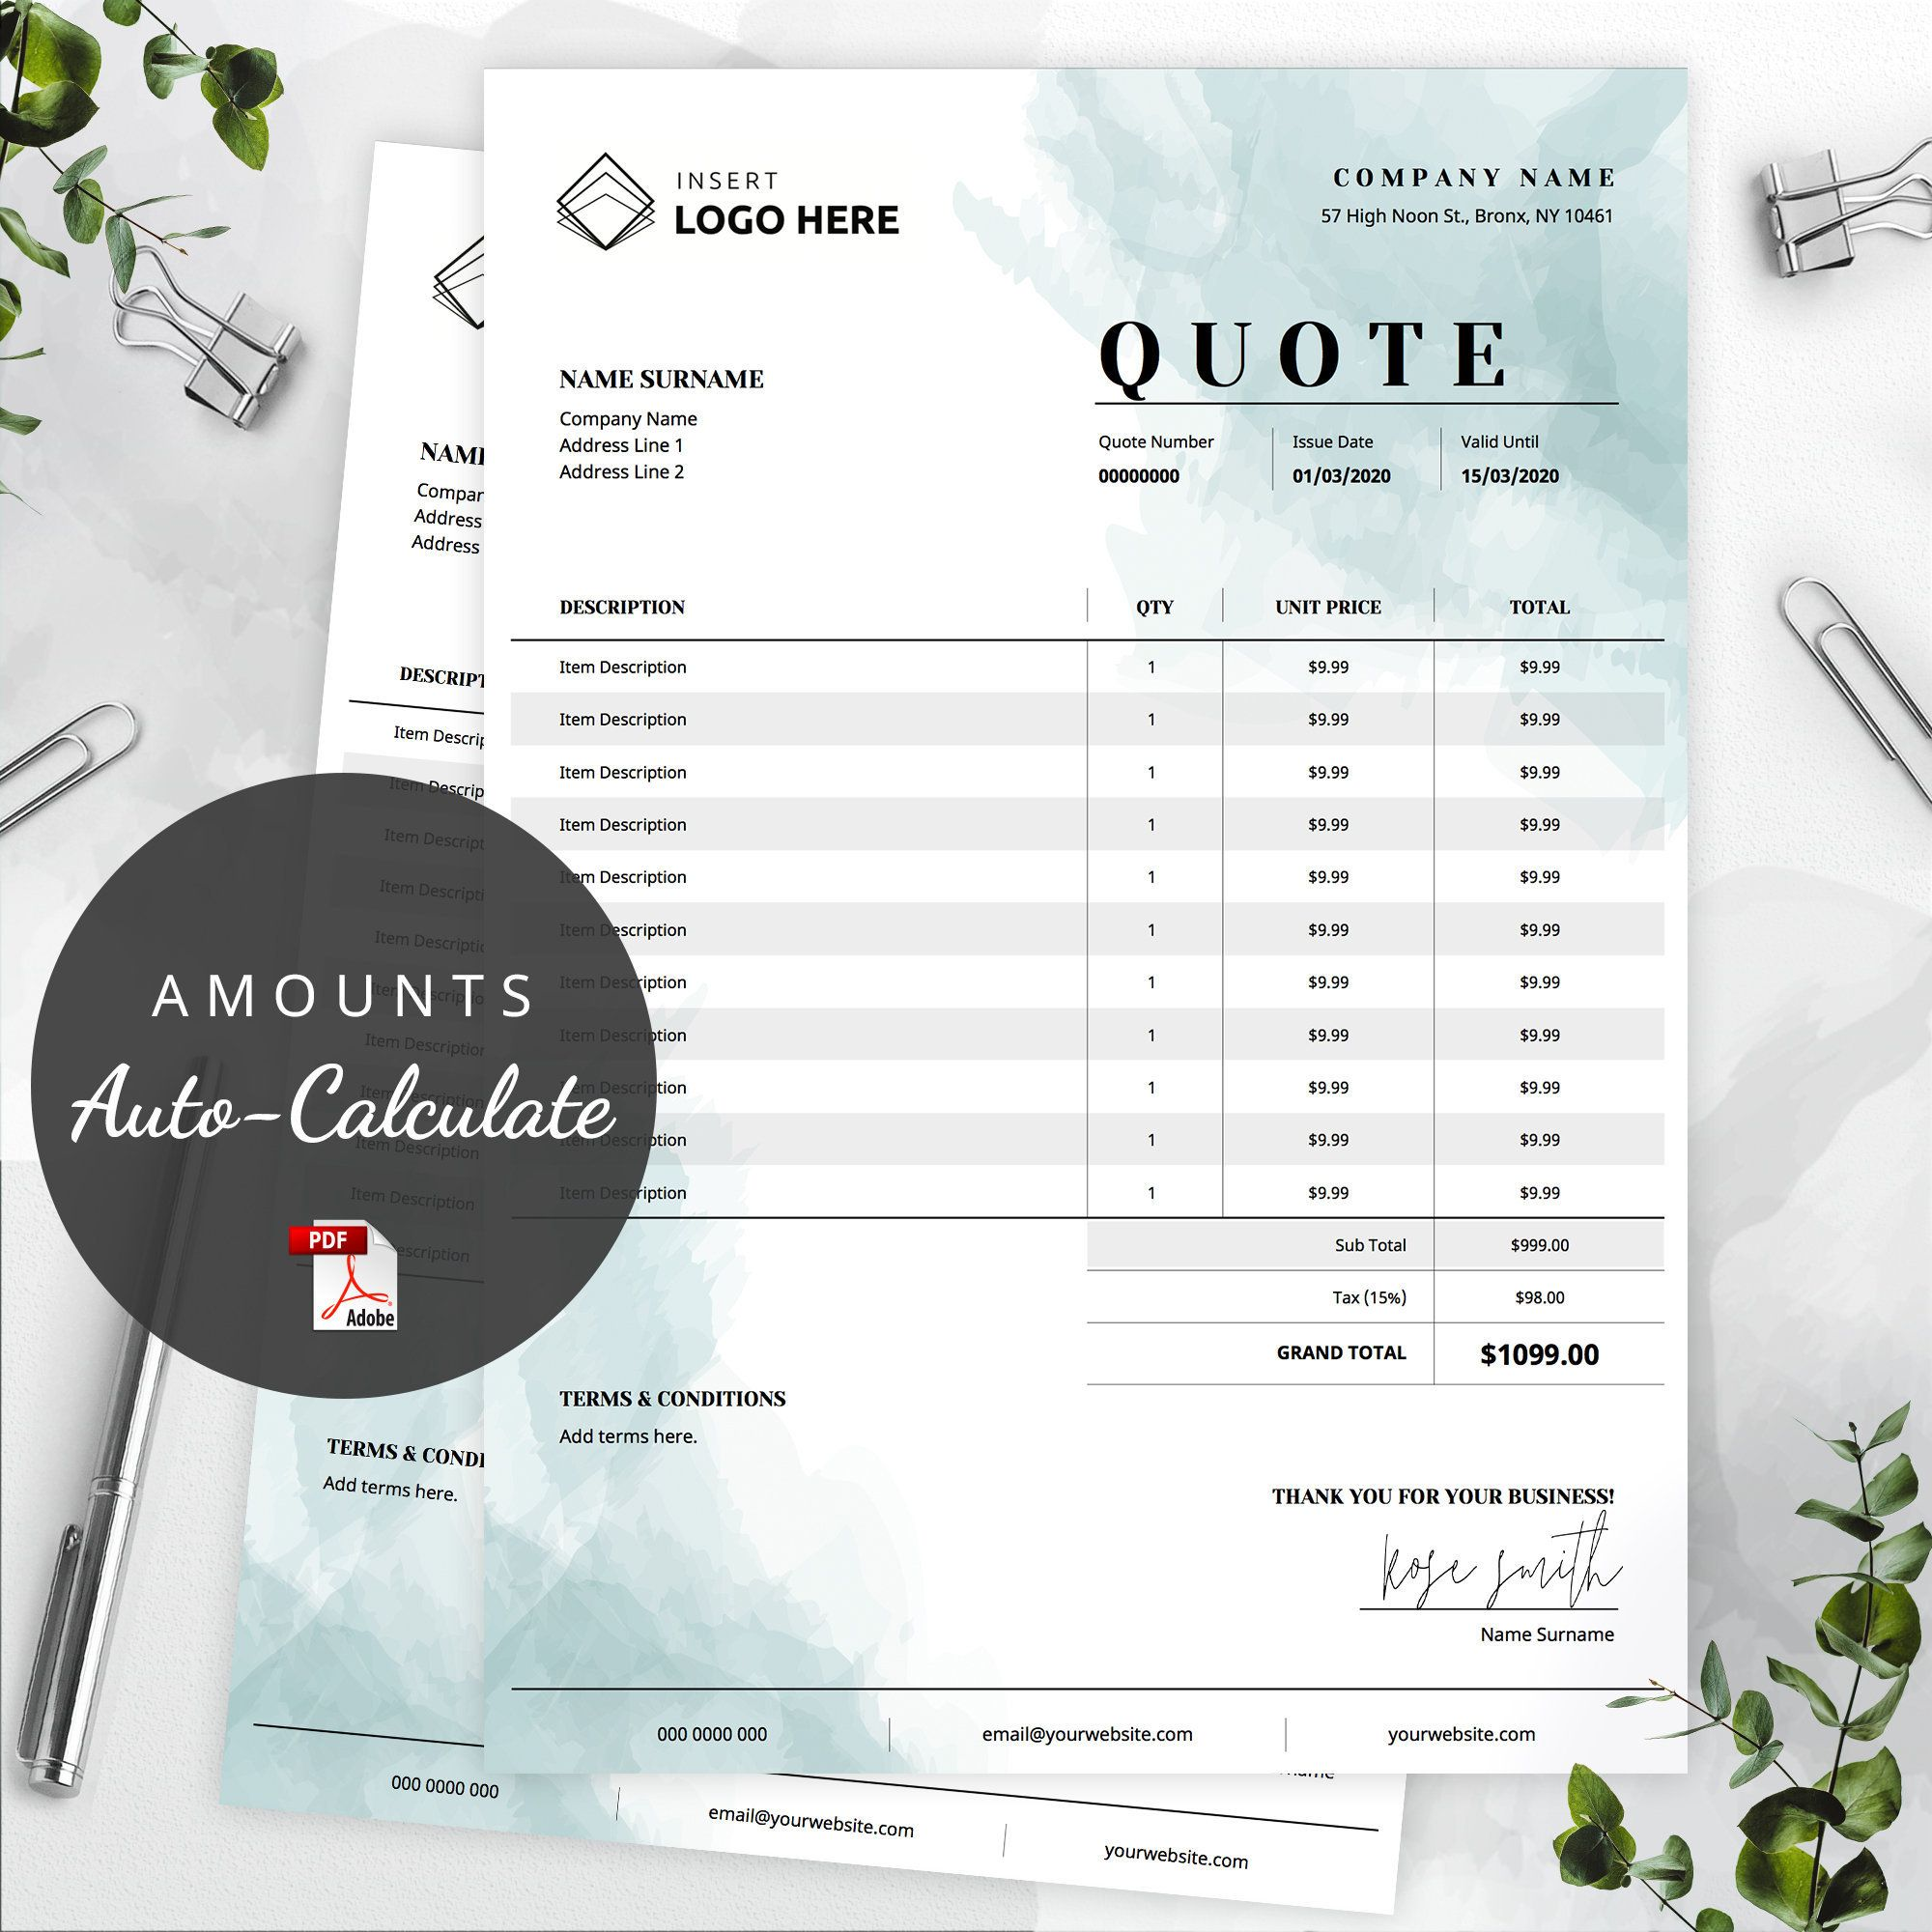 Custom Order Form Template Photographer Quote Pdf Business Etsy Invoice Template Quote Template Order Form Template